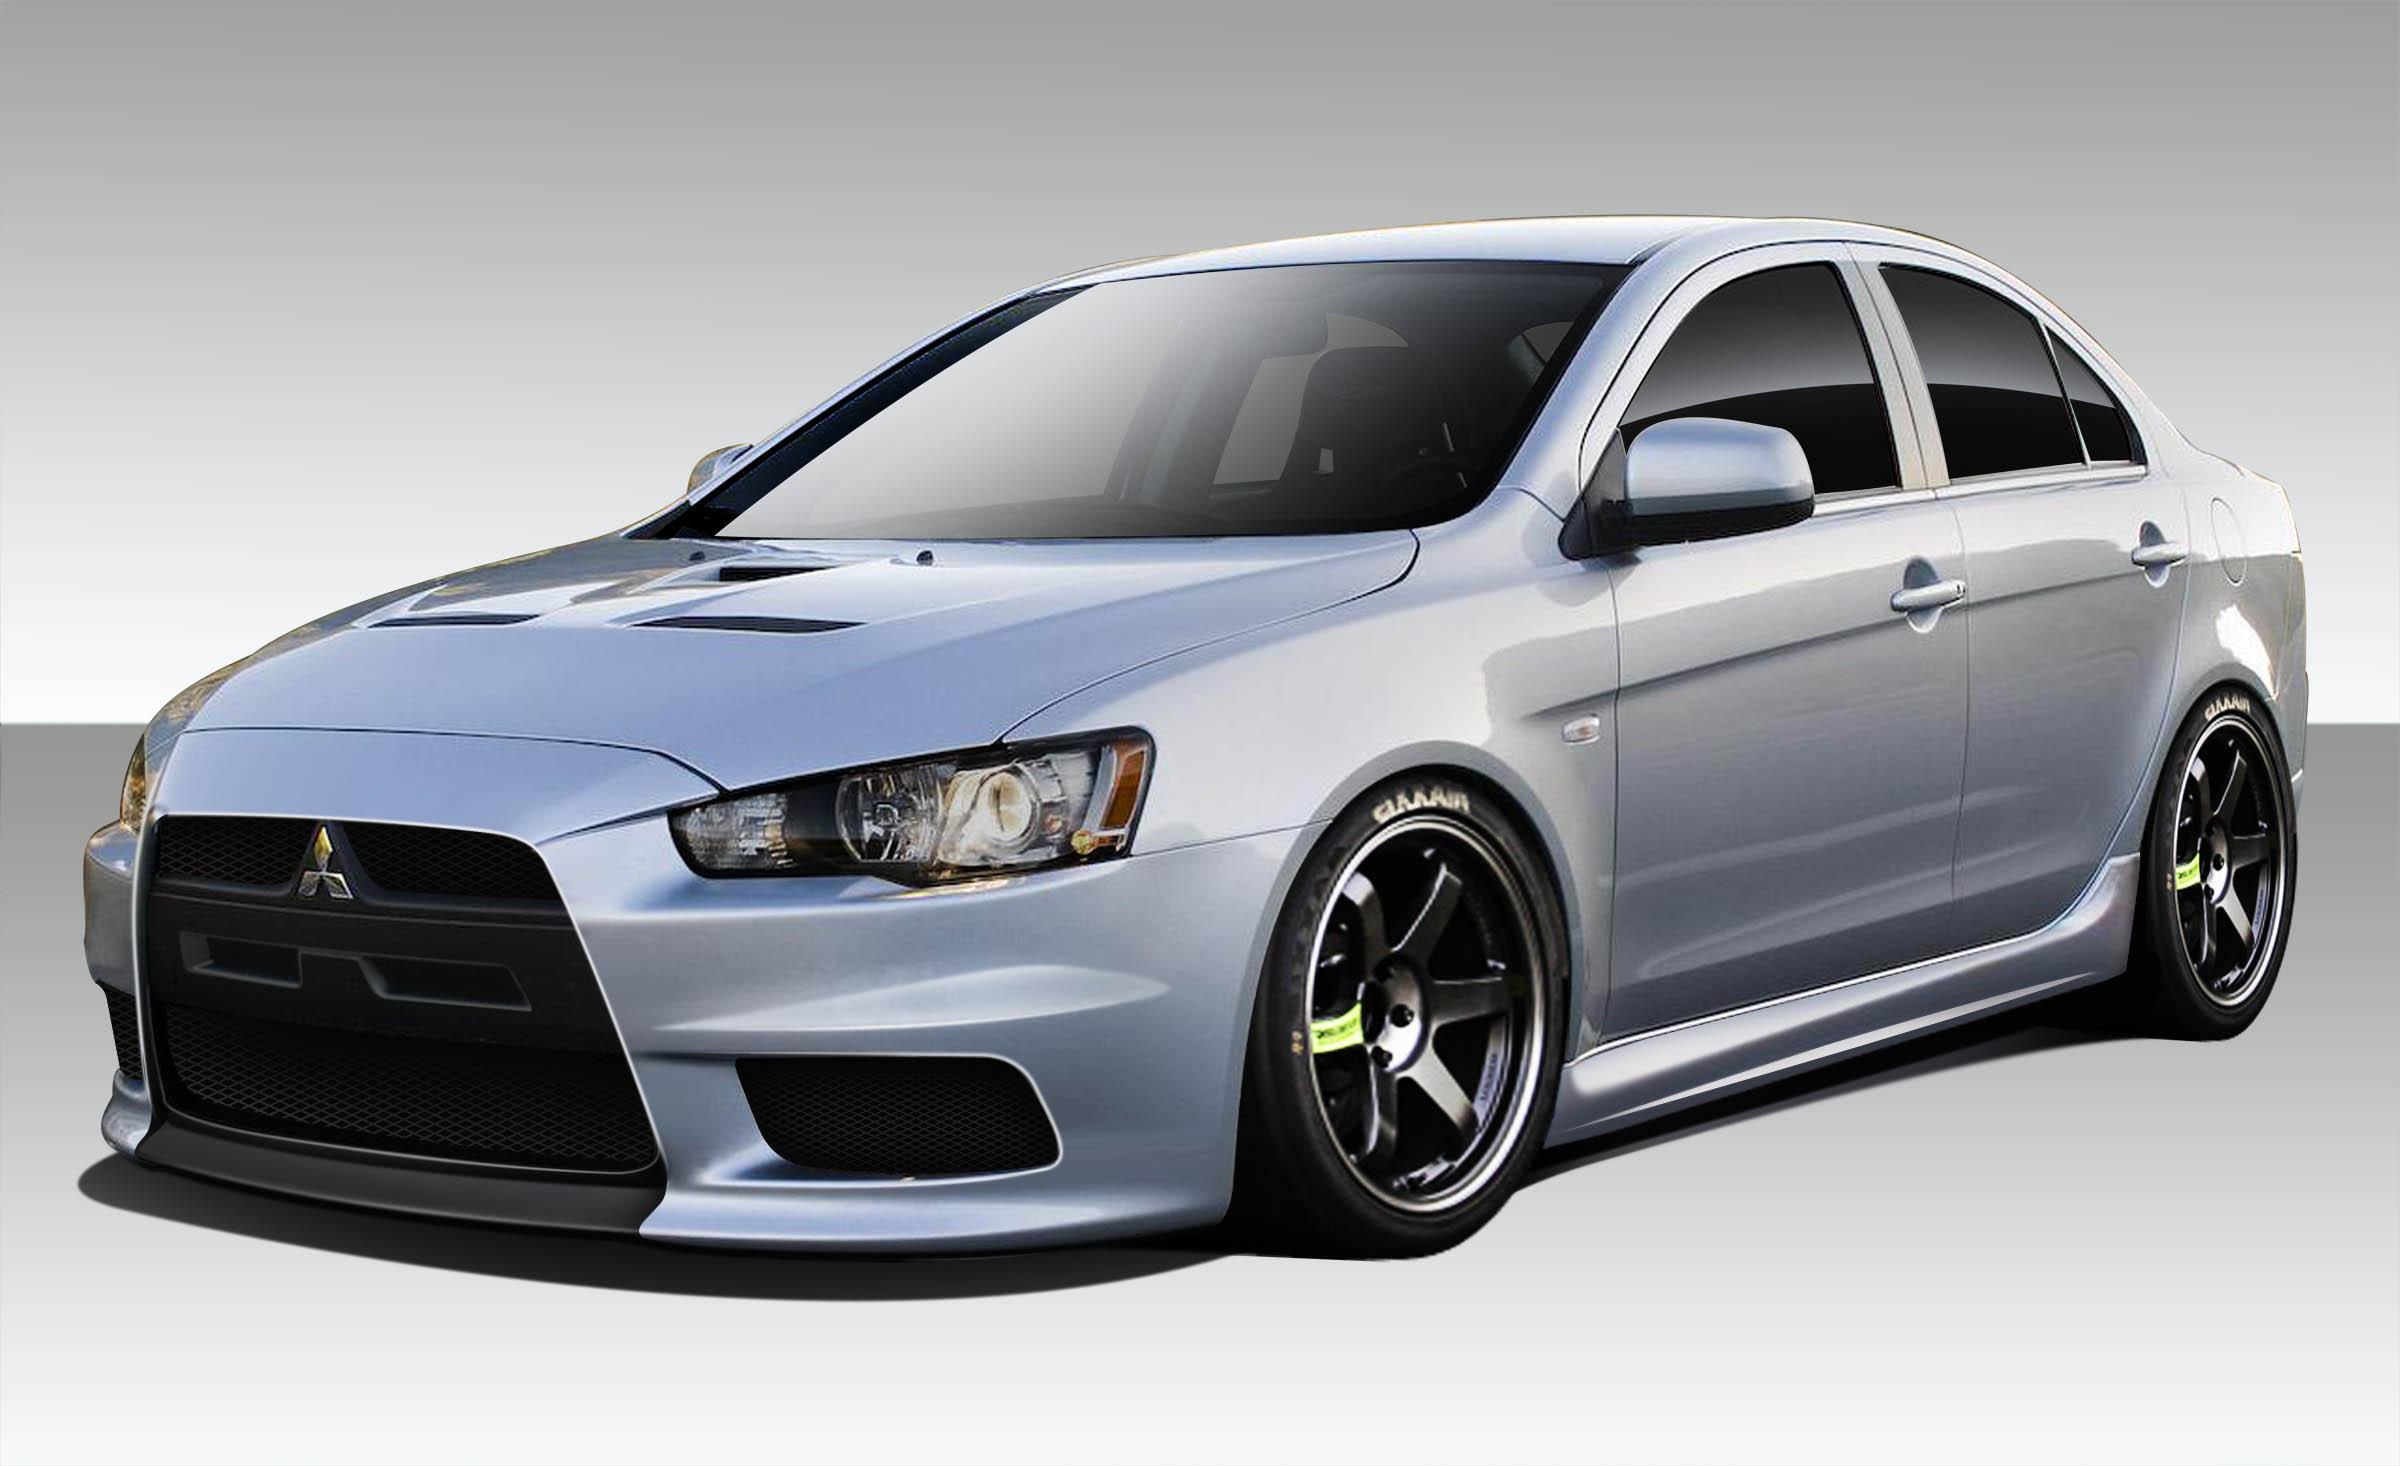 welcome to extreme dimensions item group 2008 2017 mitsubishi lancer duraflex evo x v3 body kit 4 piece